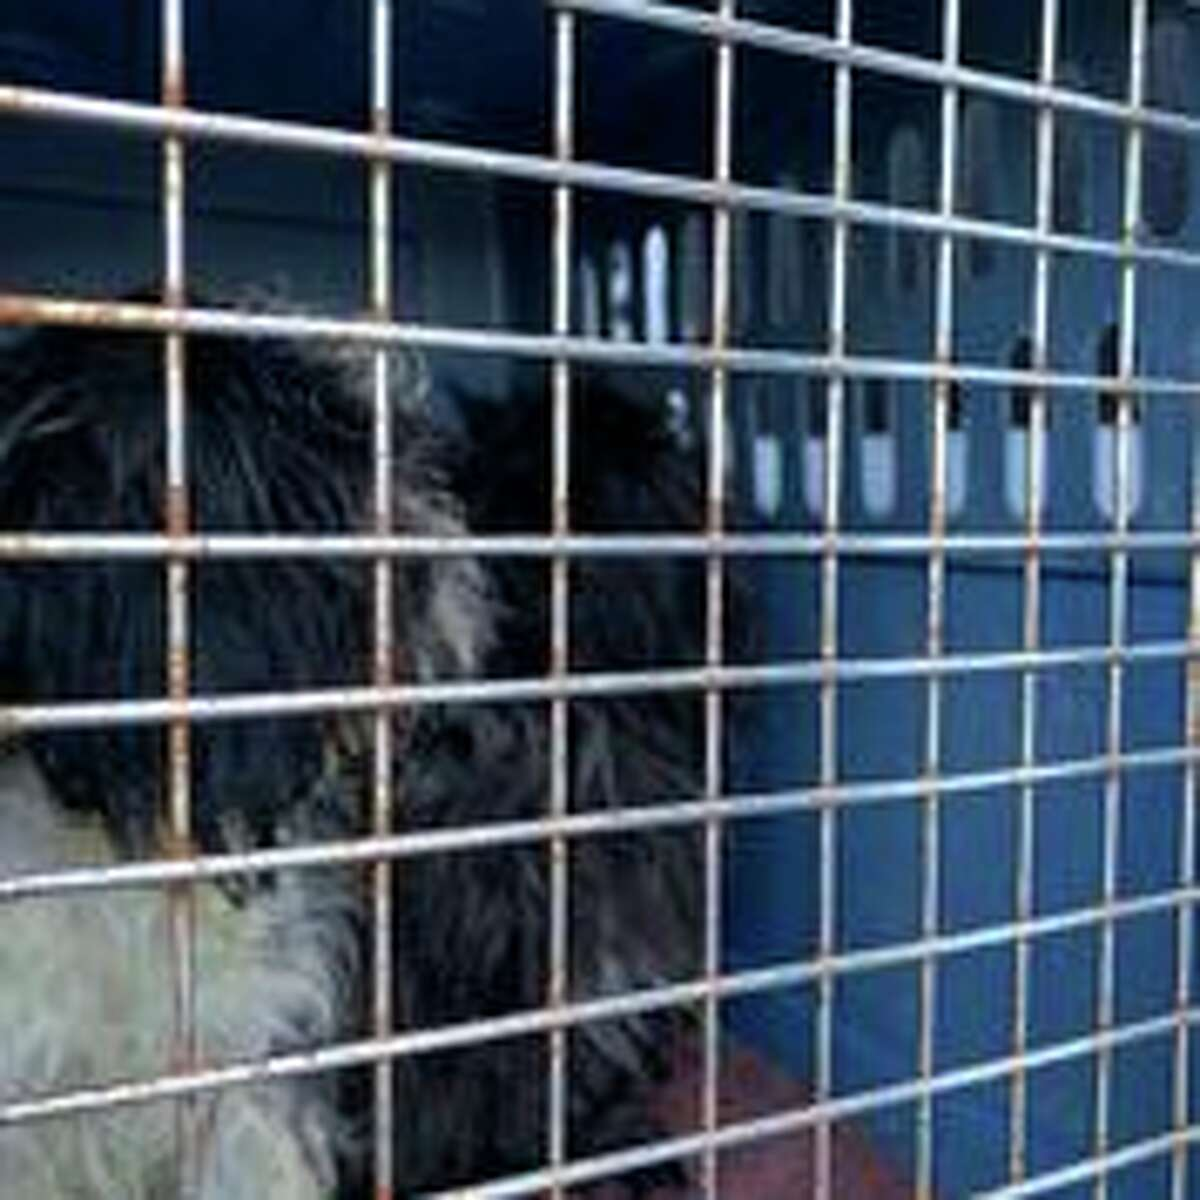 The Montgomery County SPCA says it took five grown dogs and nine puppies from a home in the town of Florida where they said the animals were found living in filth.